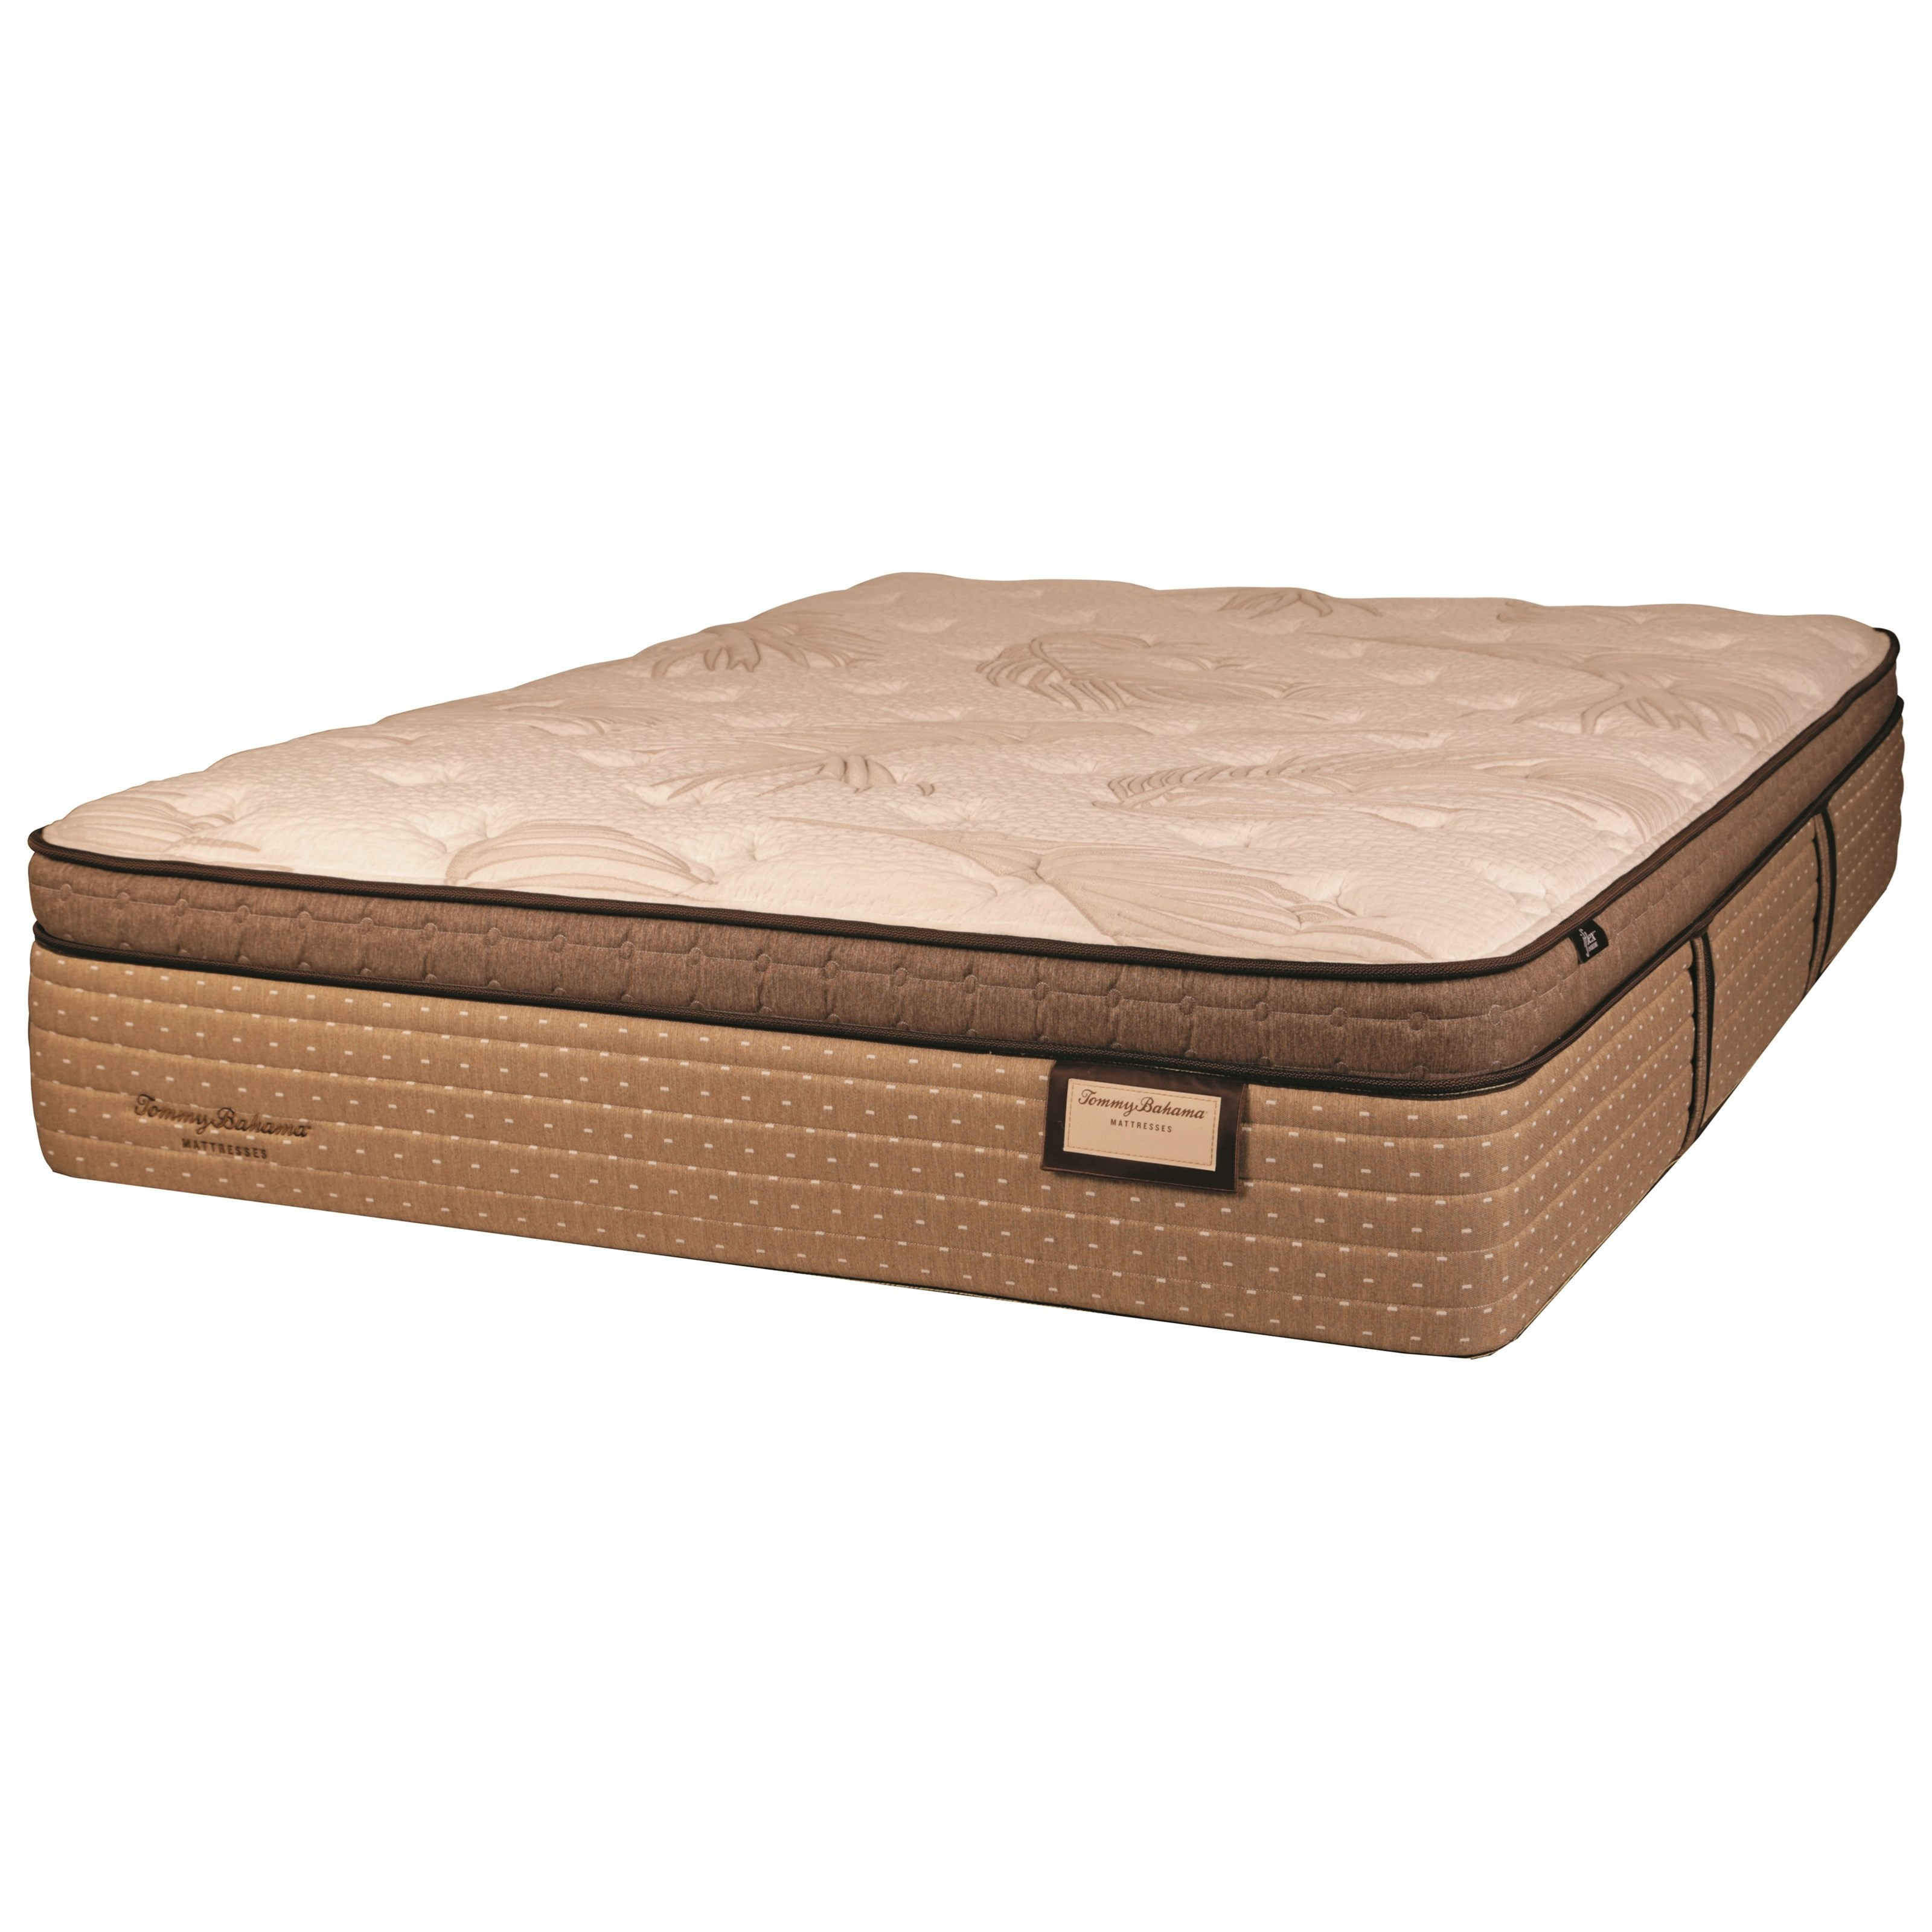 Tommy Bahama Salty Kisses ET Queen Euro Top Luxury Mattress by Tommy Bahama Mattress at Baer's Furniture